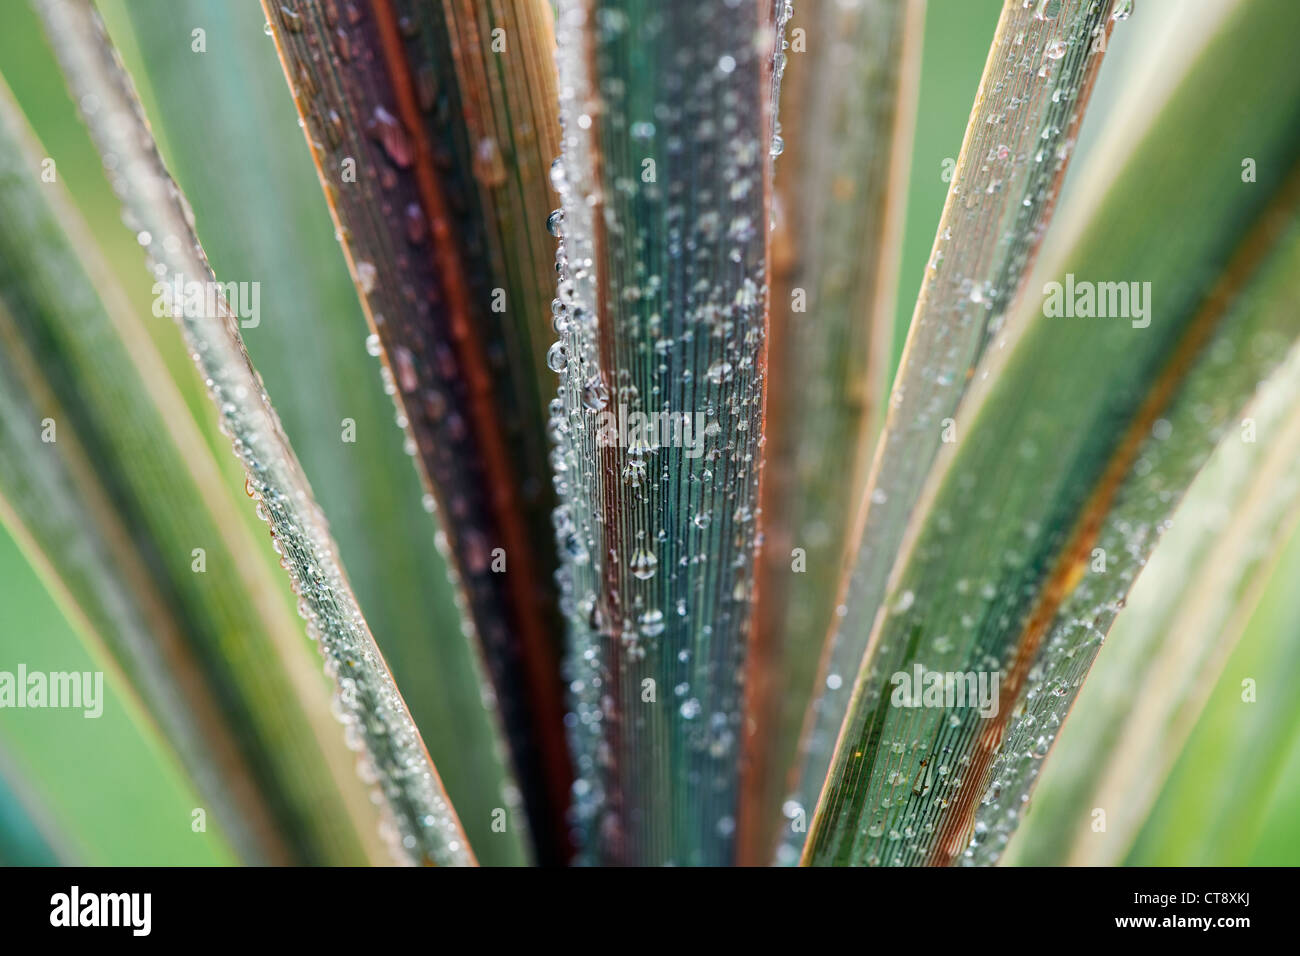 Cordyline australis 'Sundance', Cordyline, Close up of leaves with frost. - Stock Image